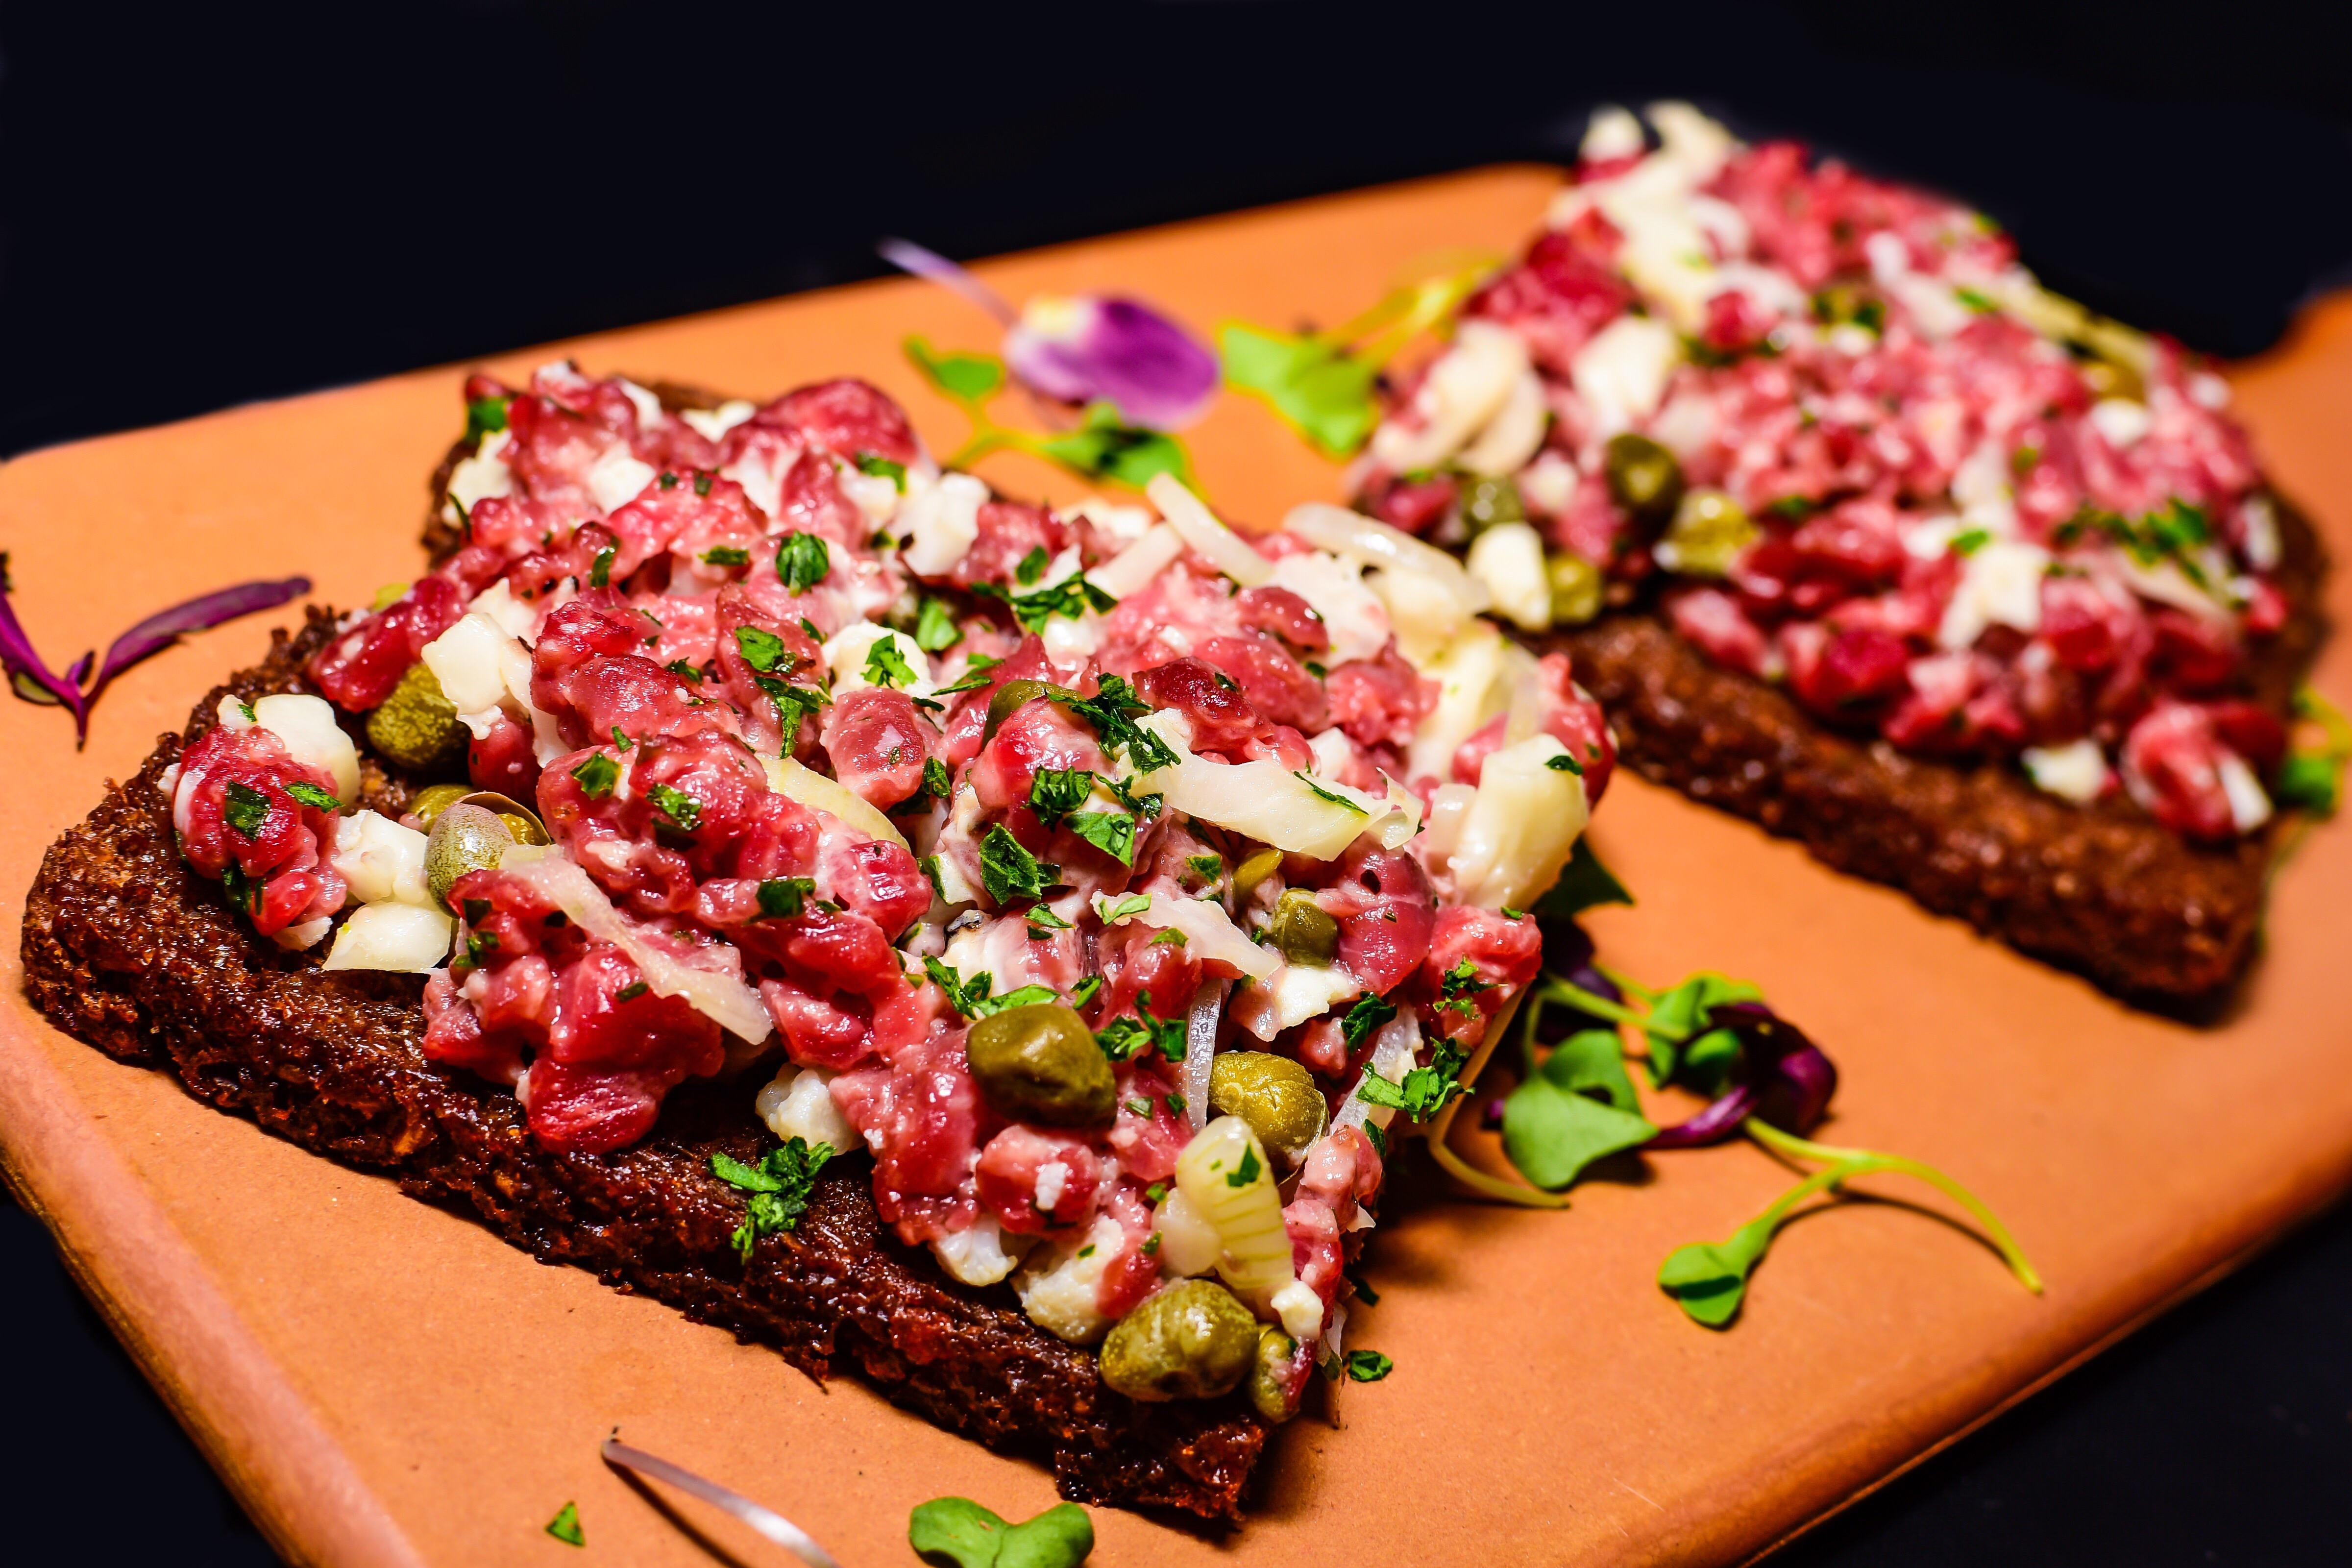 Steak tartare at Baba in Clarendon.{ }(Image: Christopher Milinauskas)